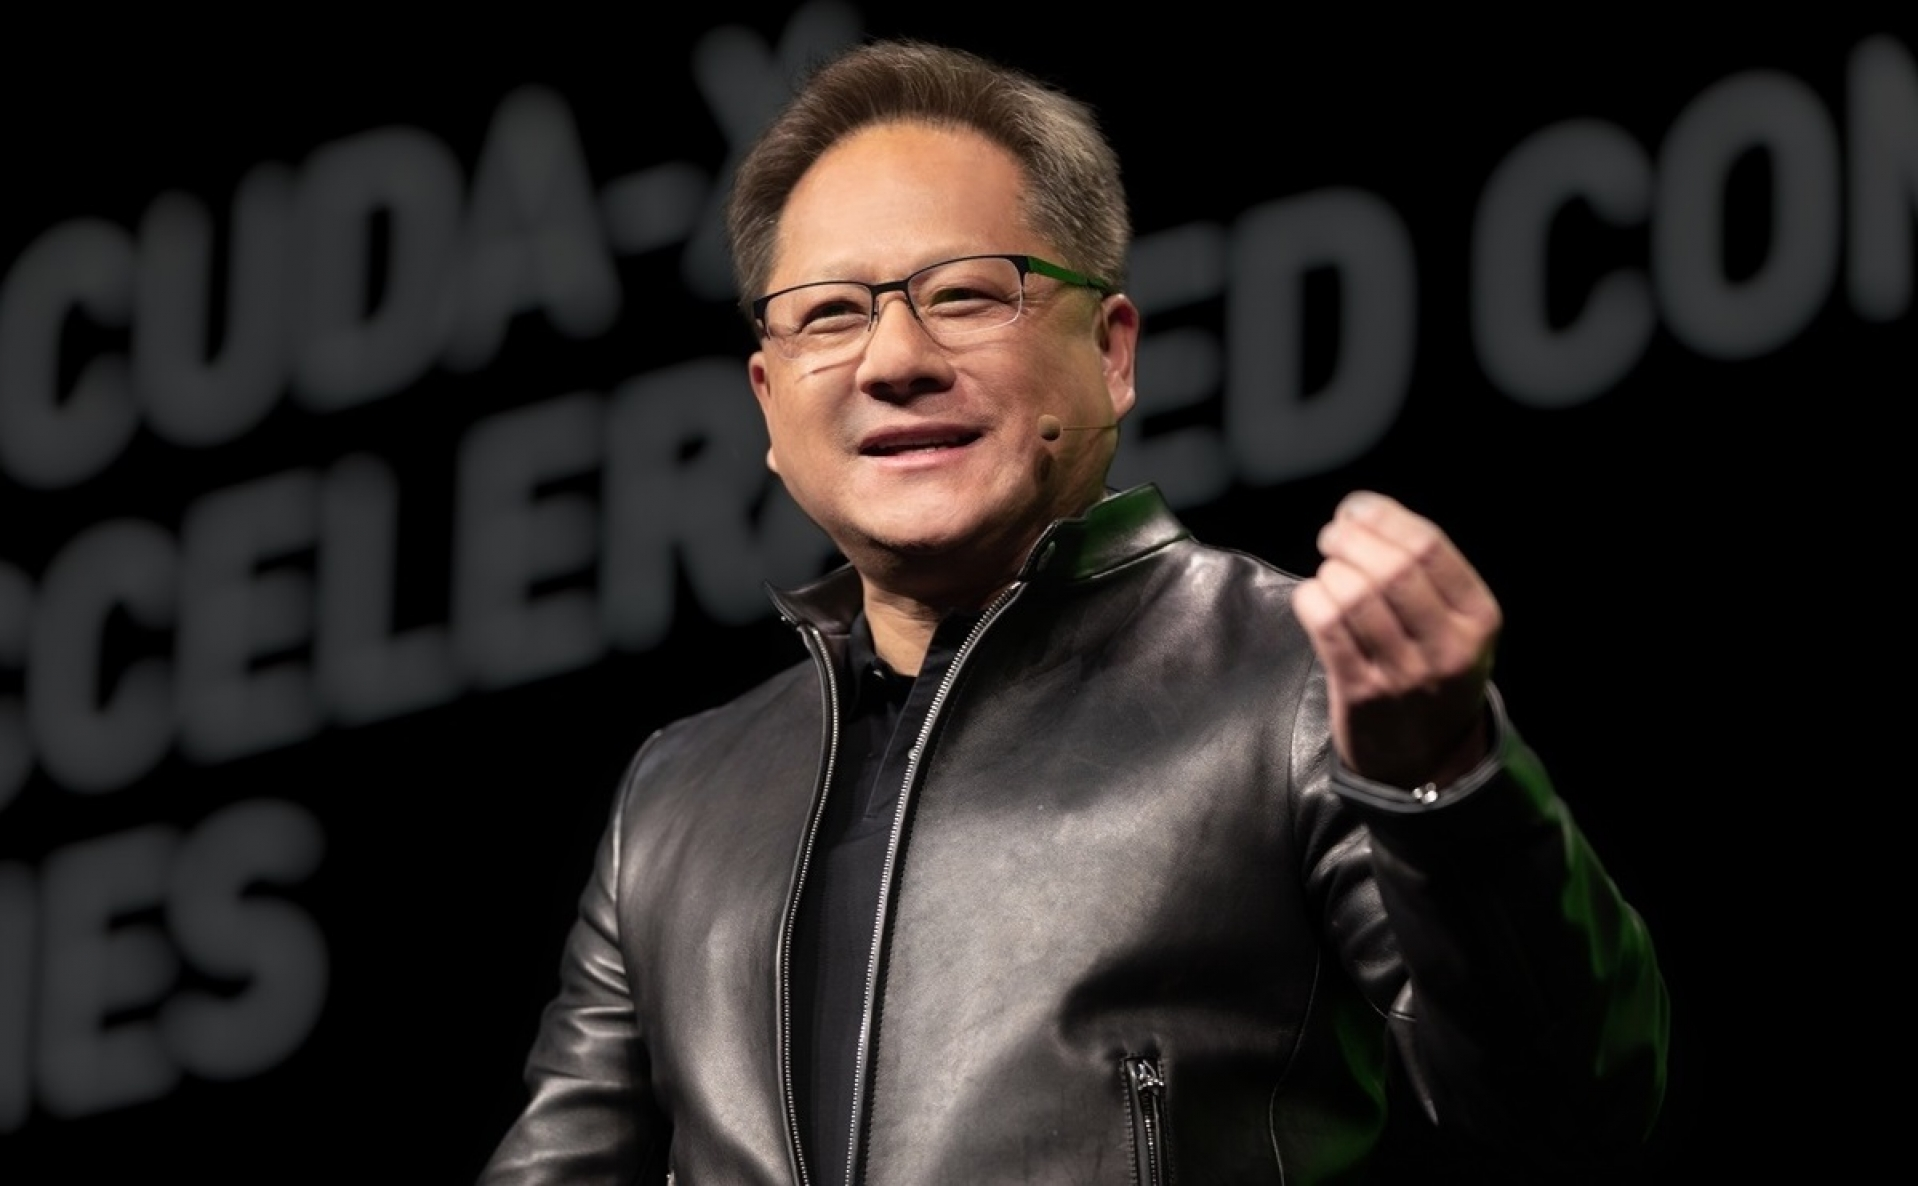 Holodecks, robots will be part of future offices: NVIDIA CEO Jensen Huang